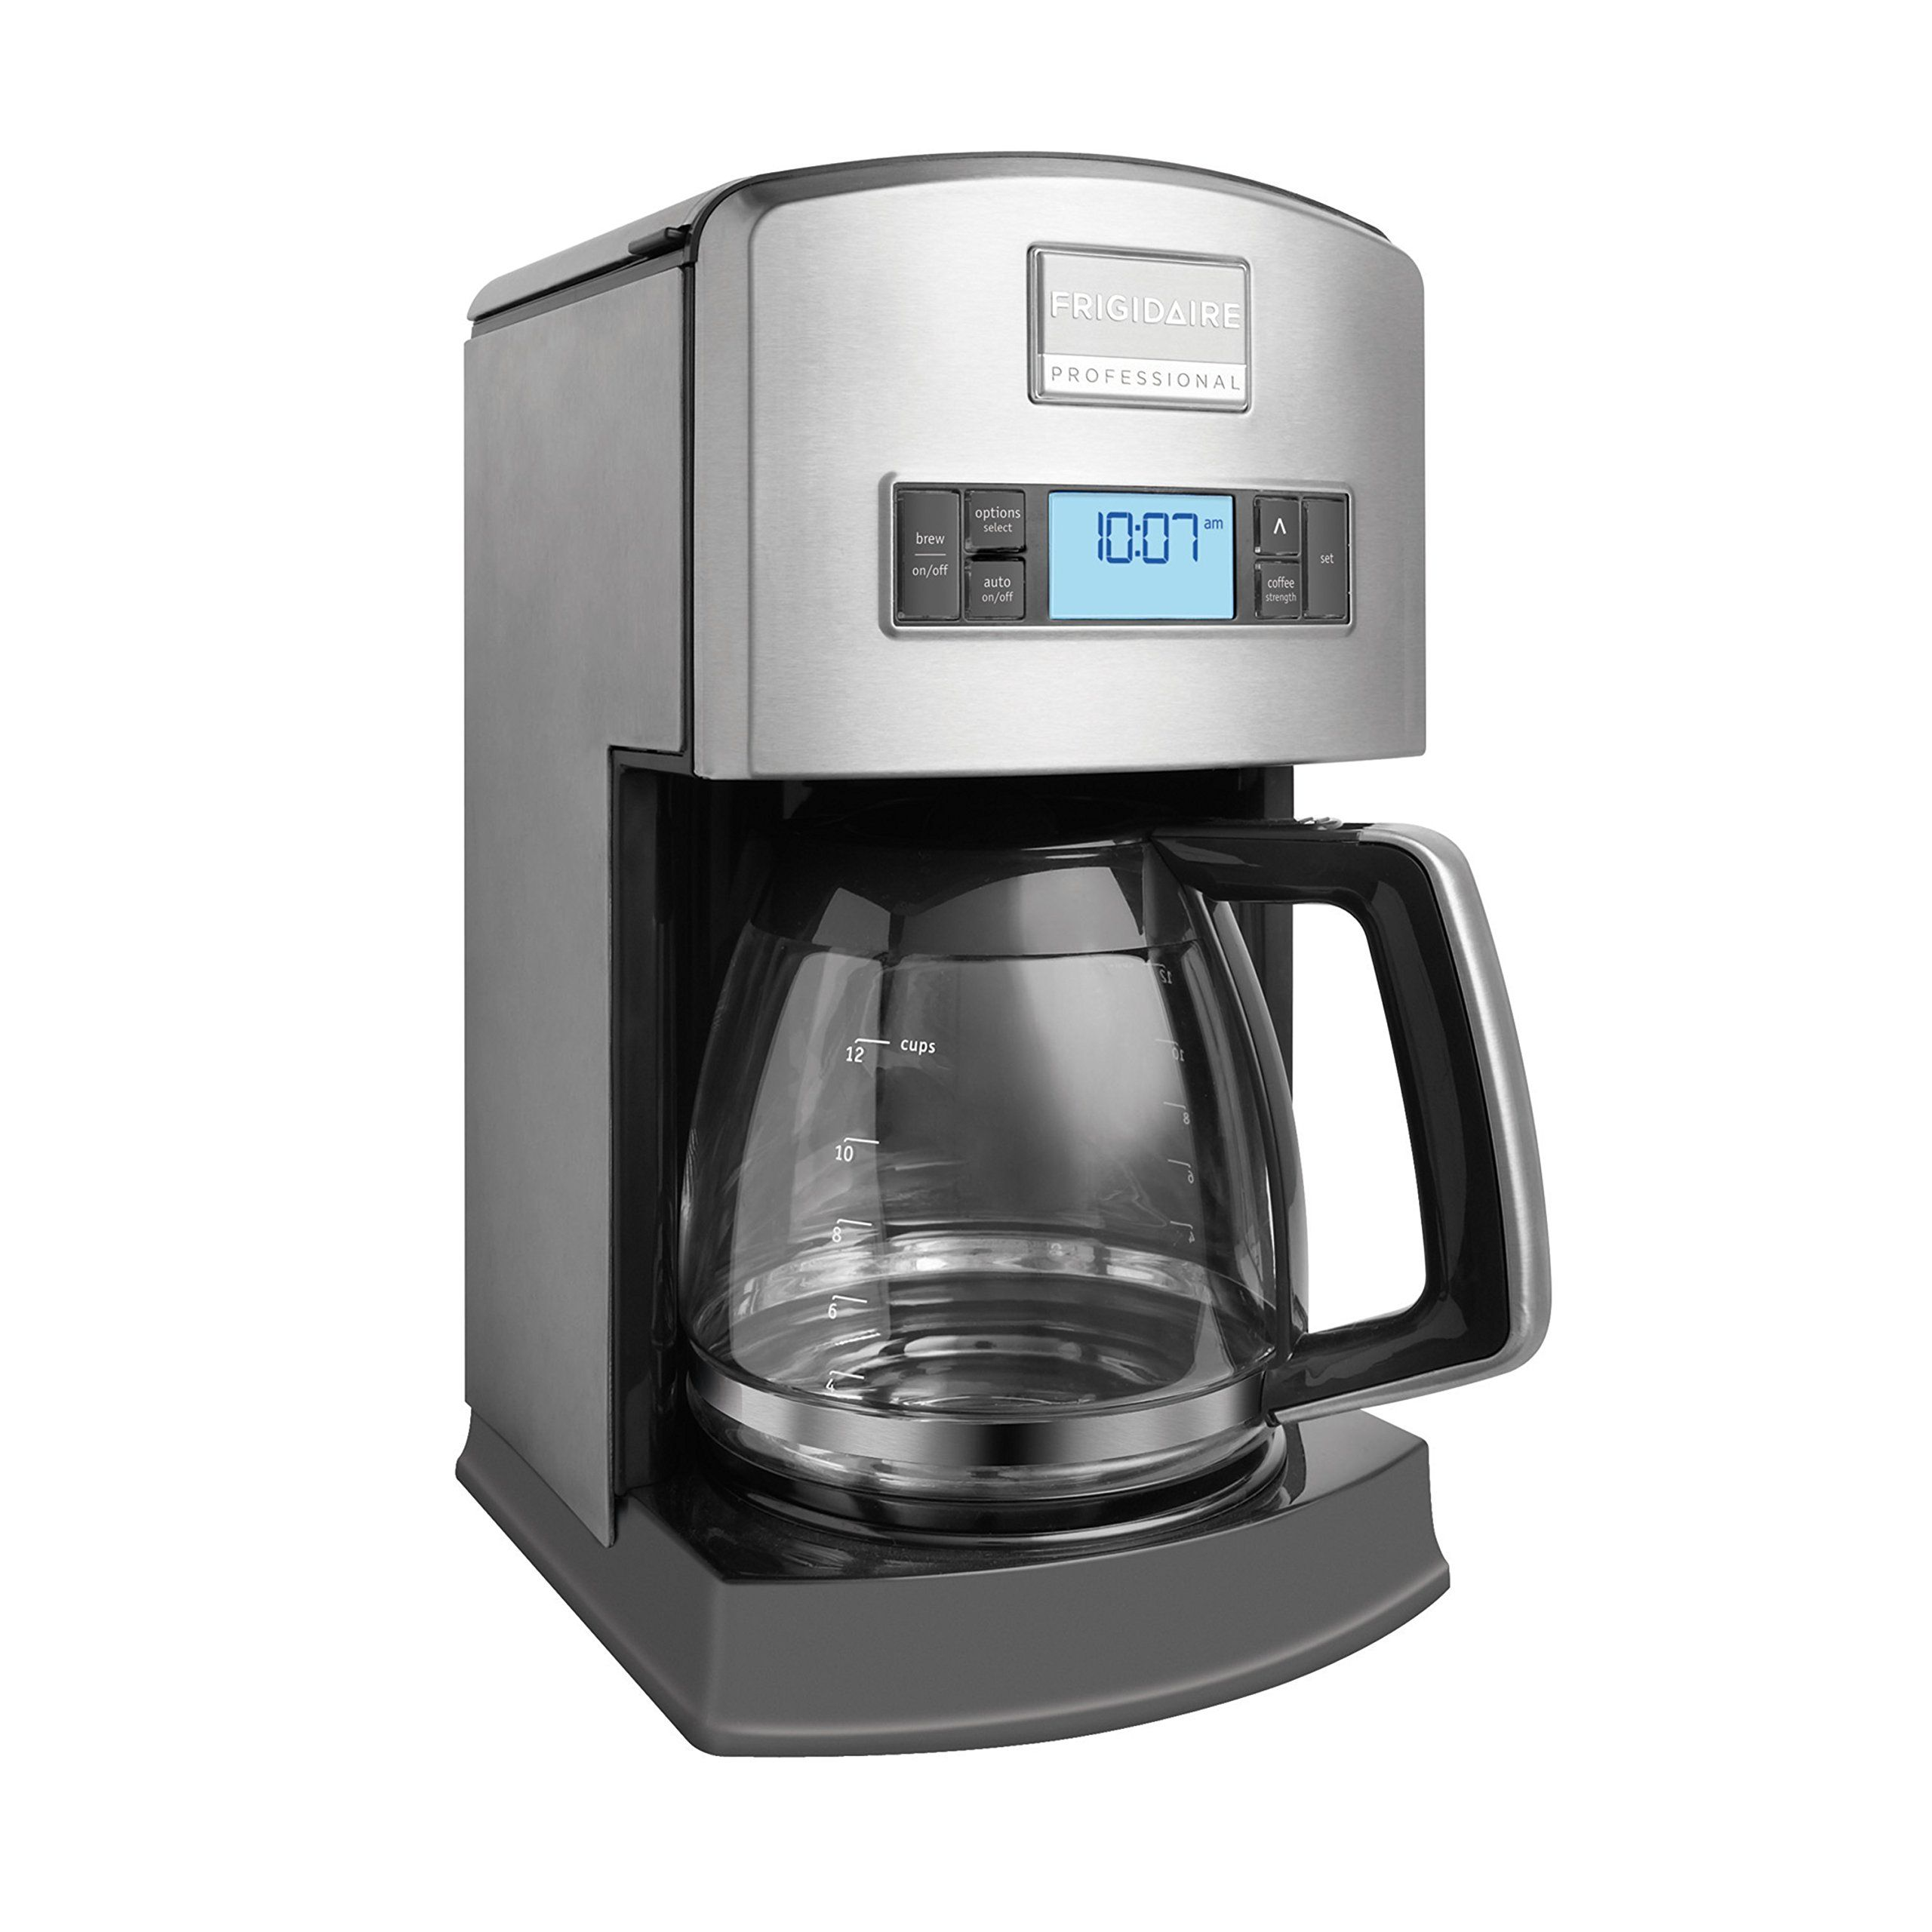 Frigidaire Professional ProSelect Digital 12Cup Coffee